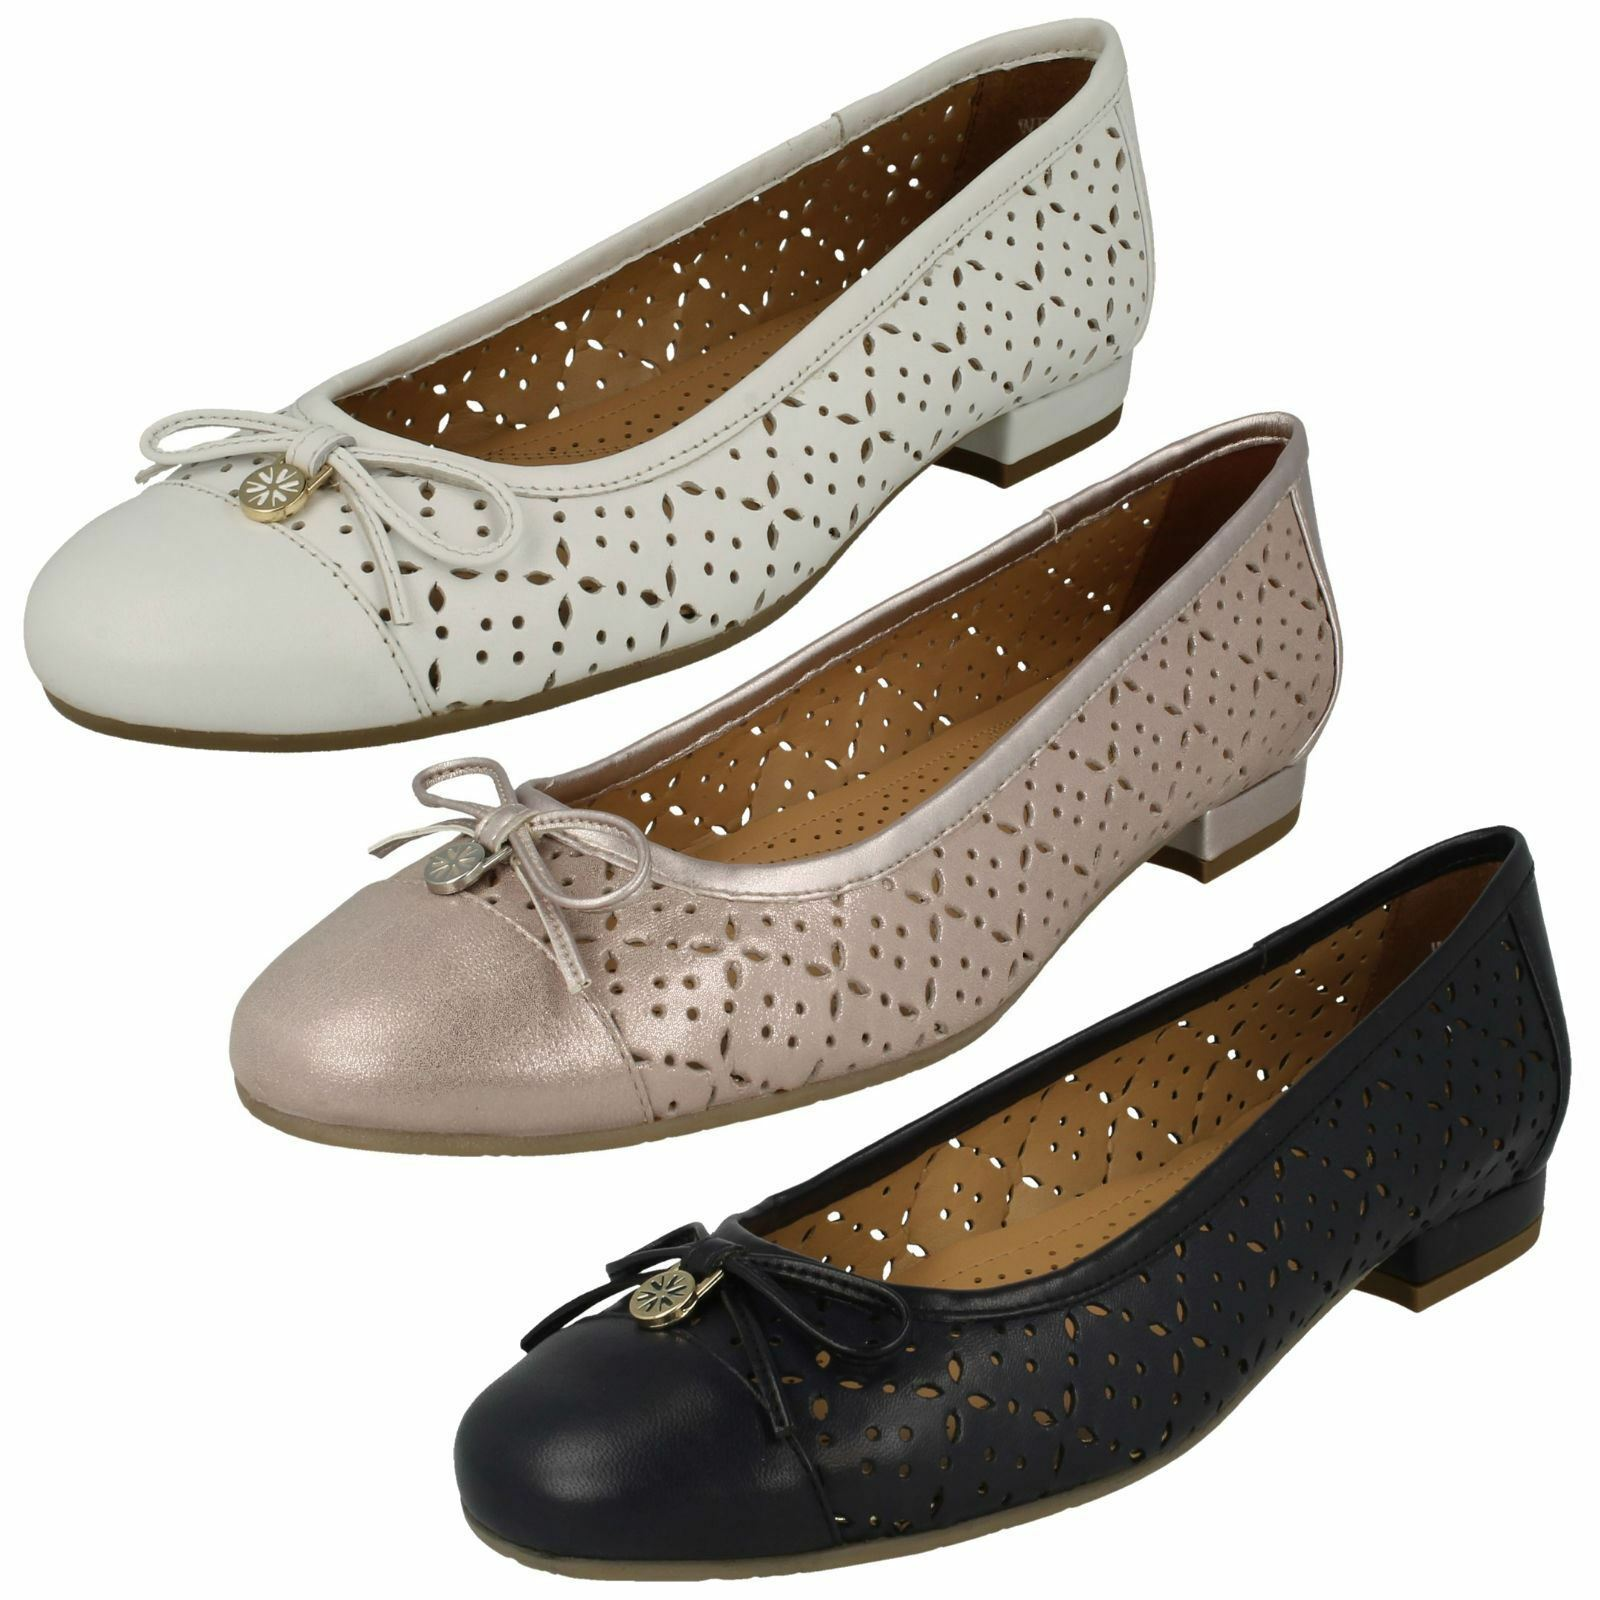 Ladies Van Dal Ballerina Style shoes (Wentworth)